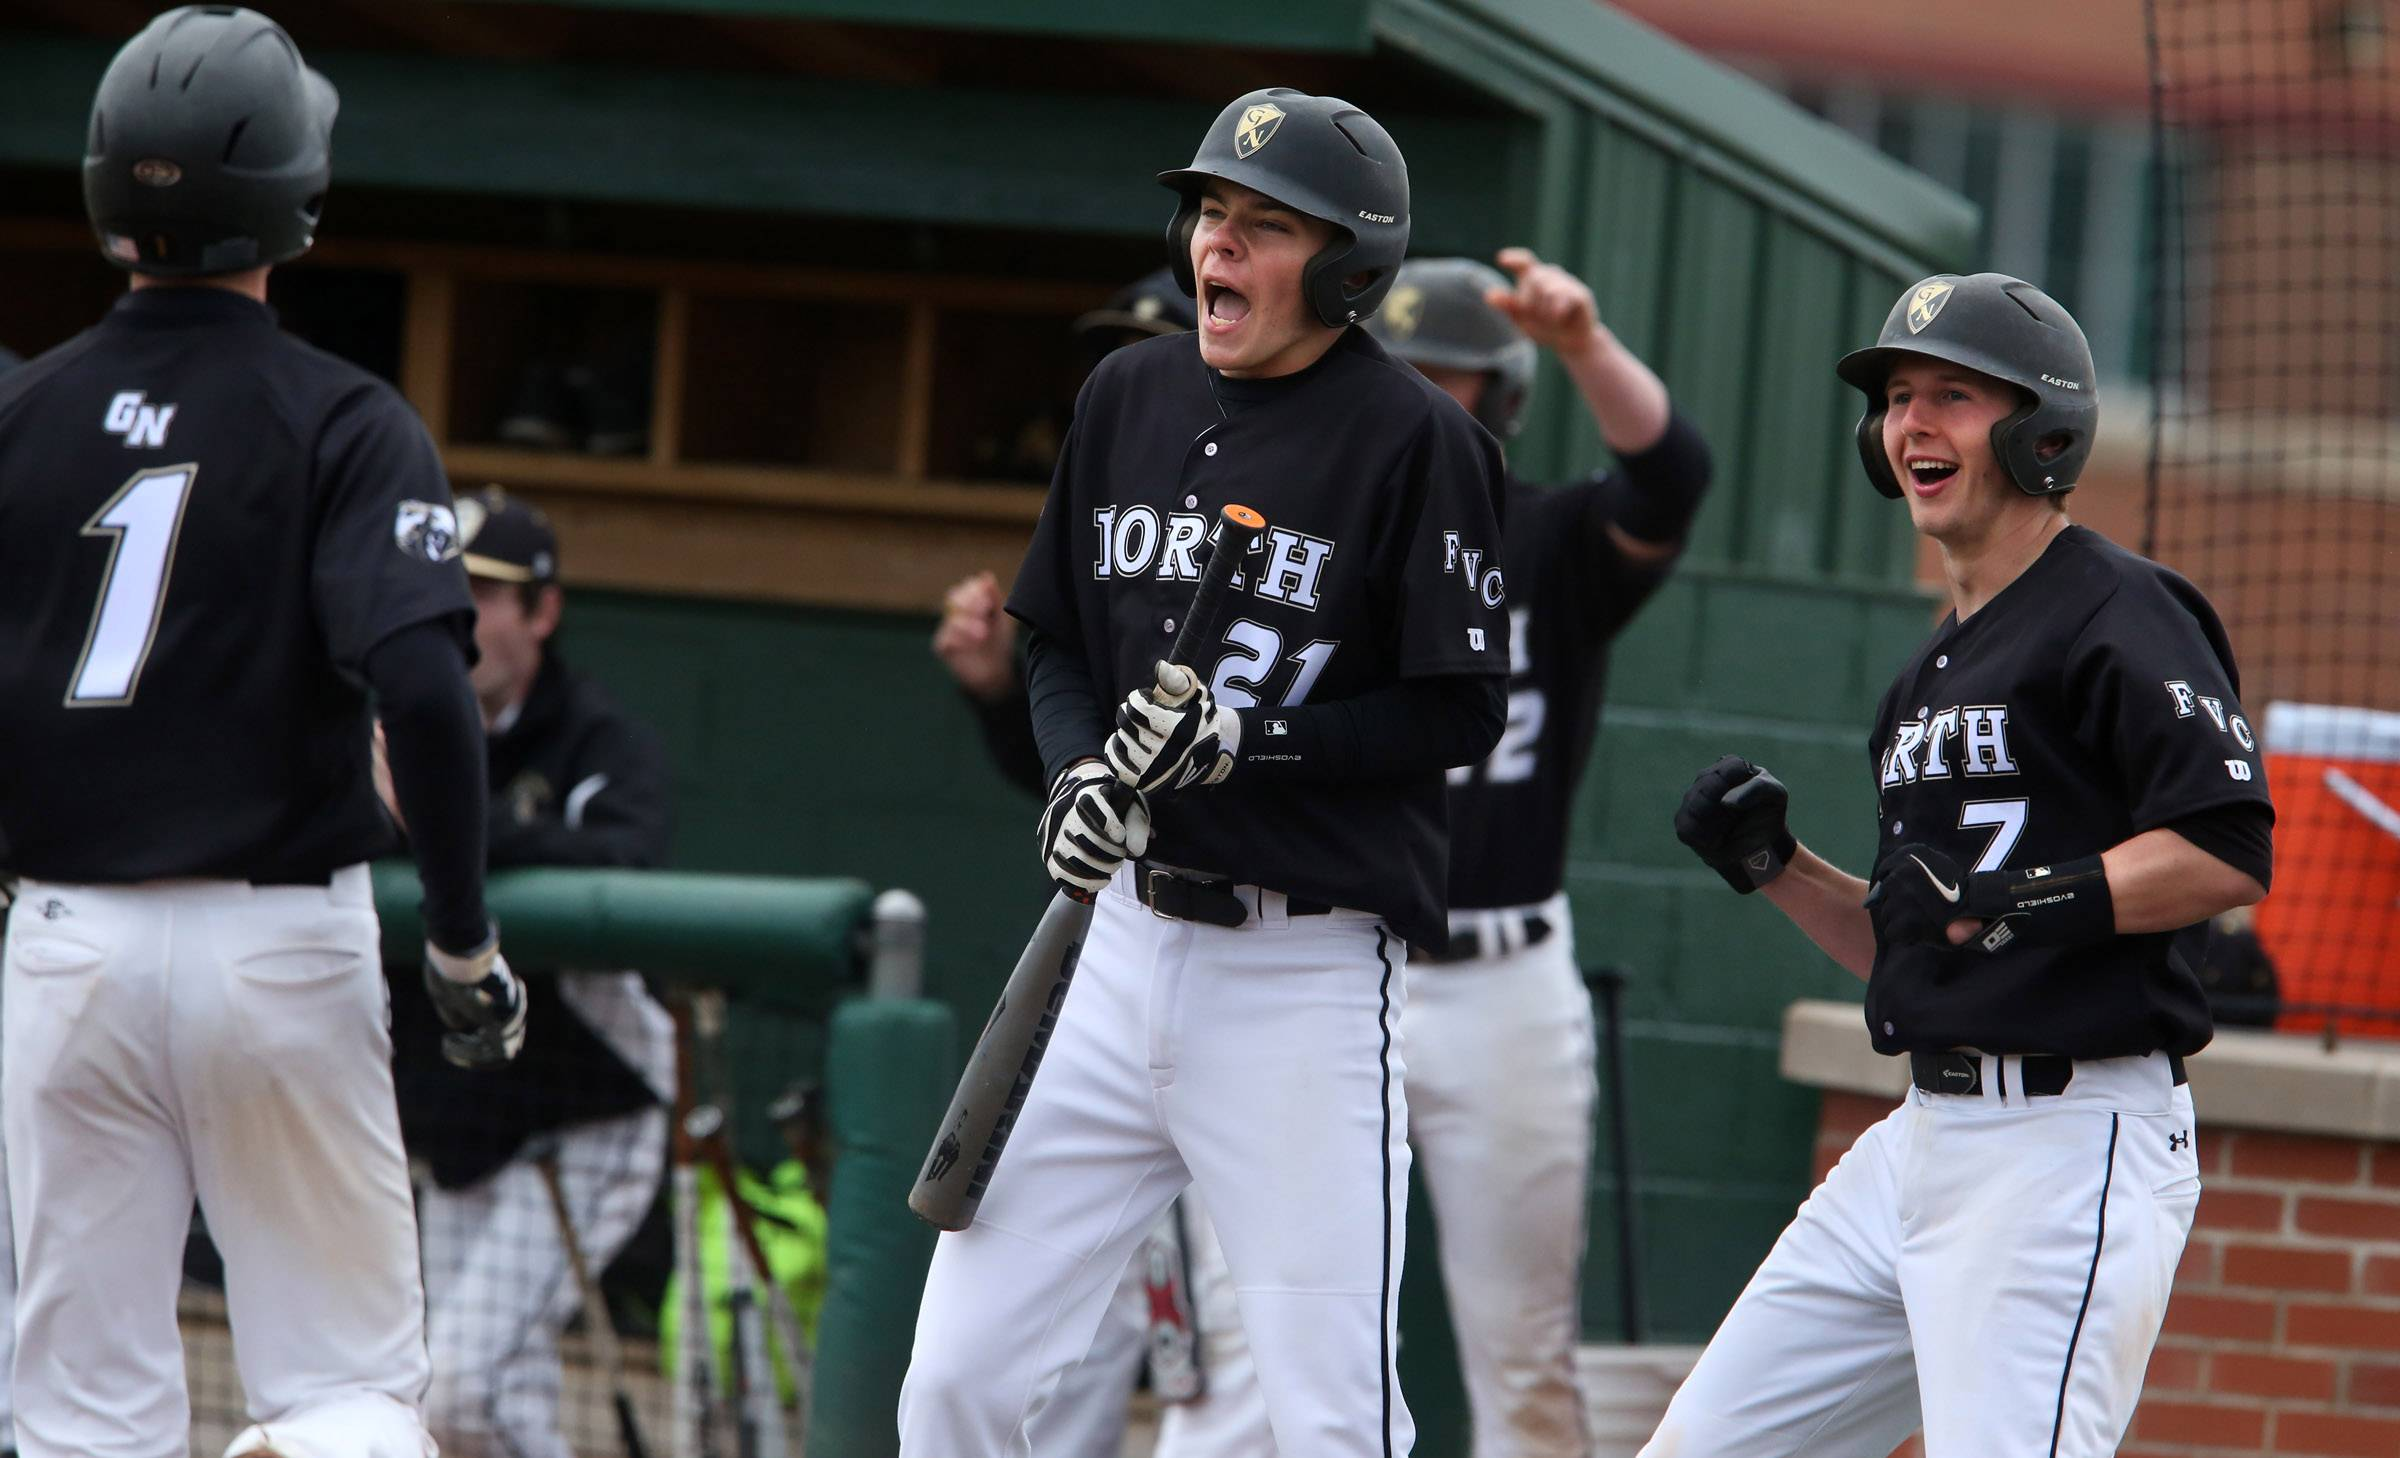 Grayslake North's Ryan Gross, center, and Jason Petrillo, right, celebrate as Sam Cremin, left, crosses the plate against Grayslake Central on Friday at Grayslake Central.